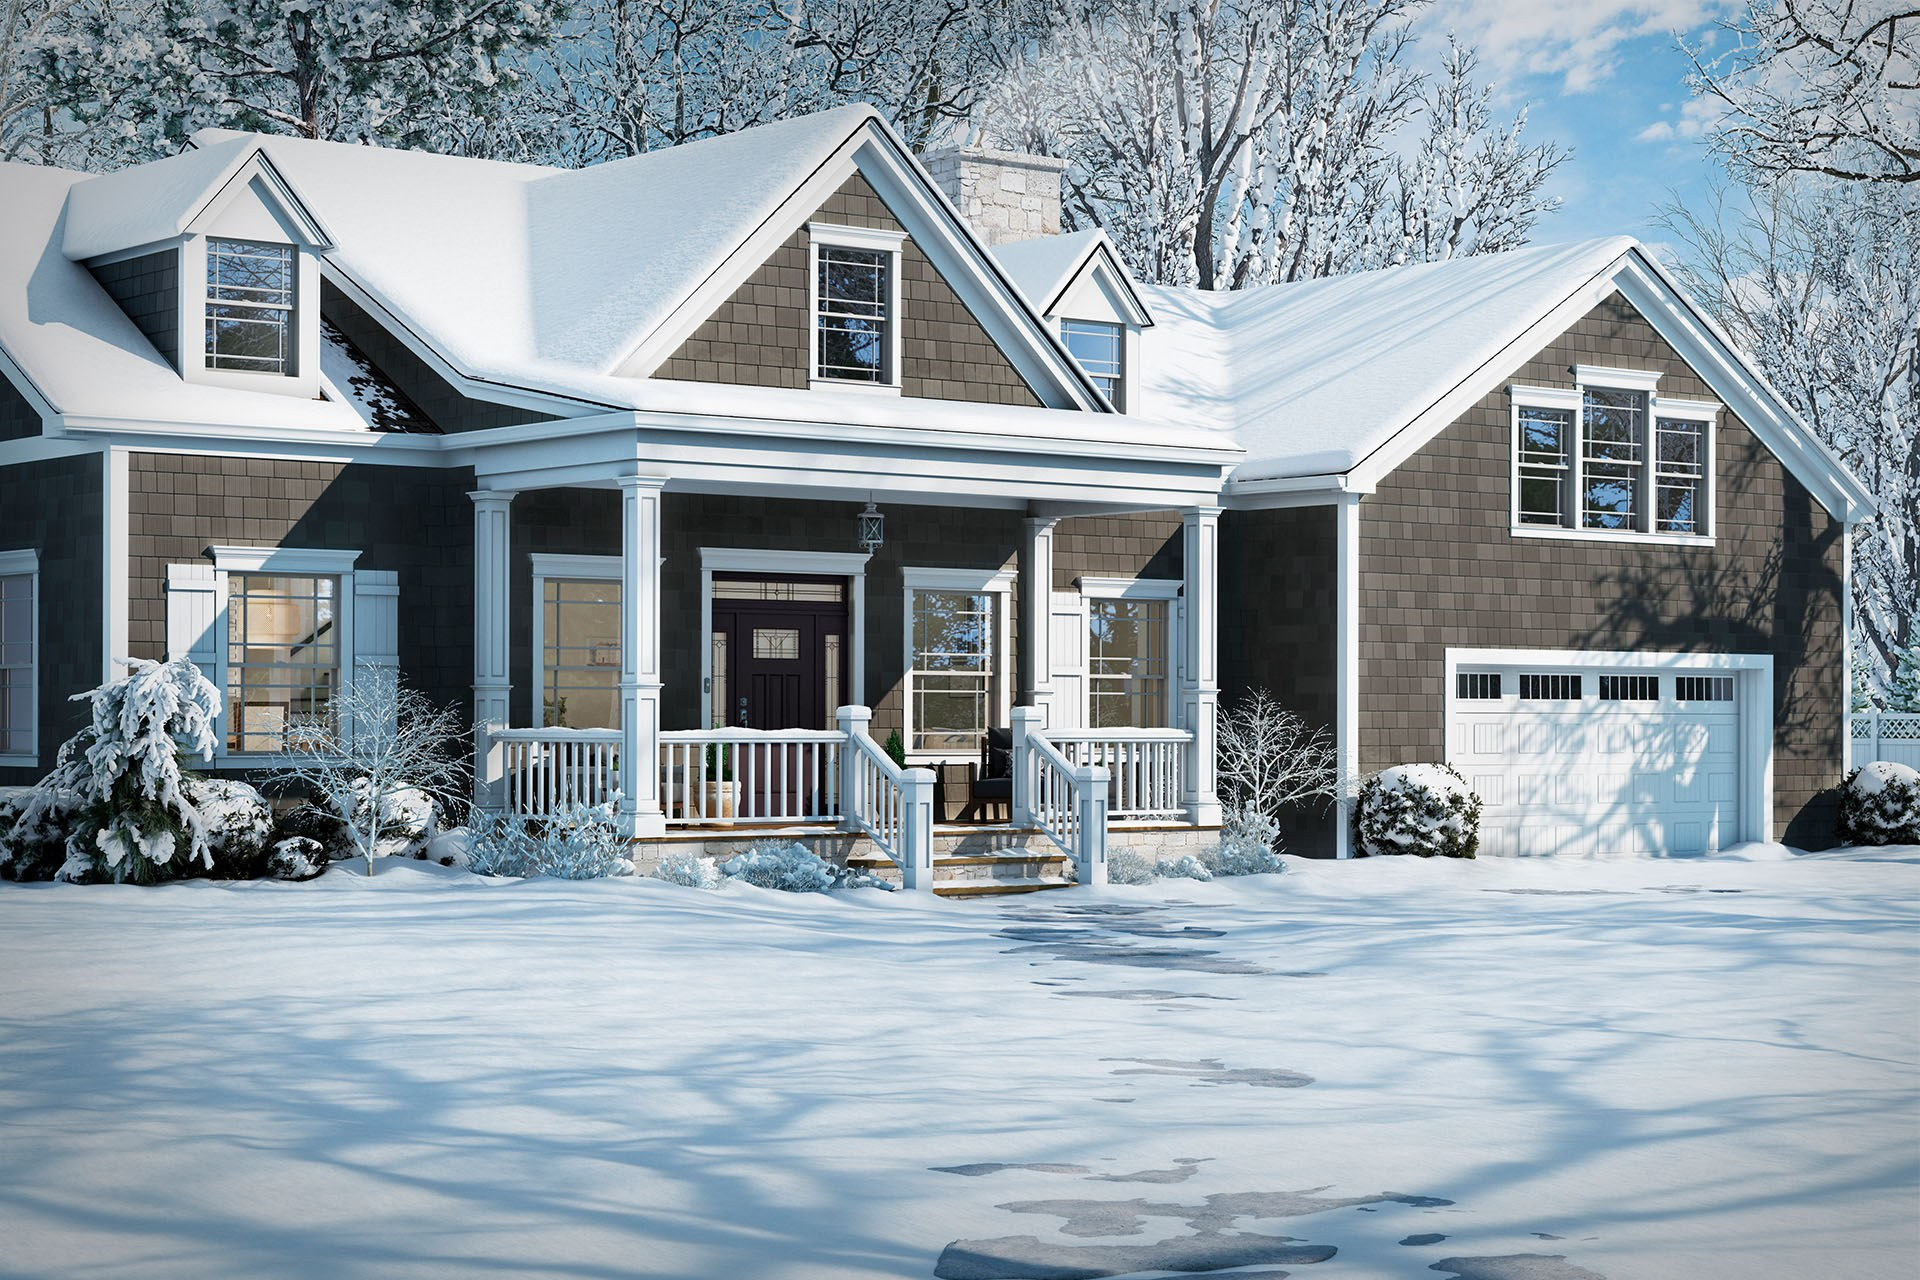 11 Simple Ways to Prepare Your Home for Winter